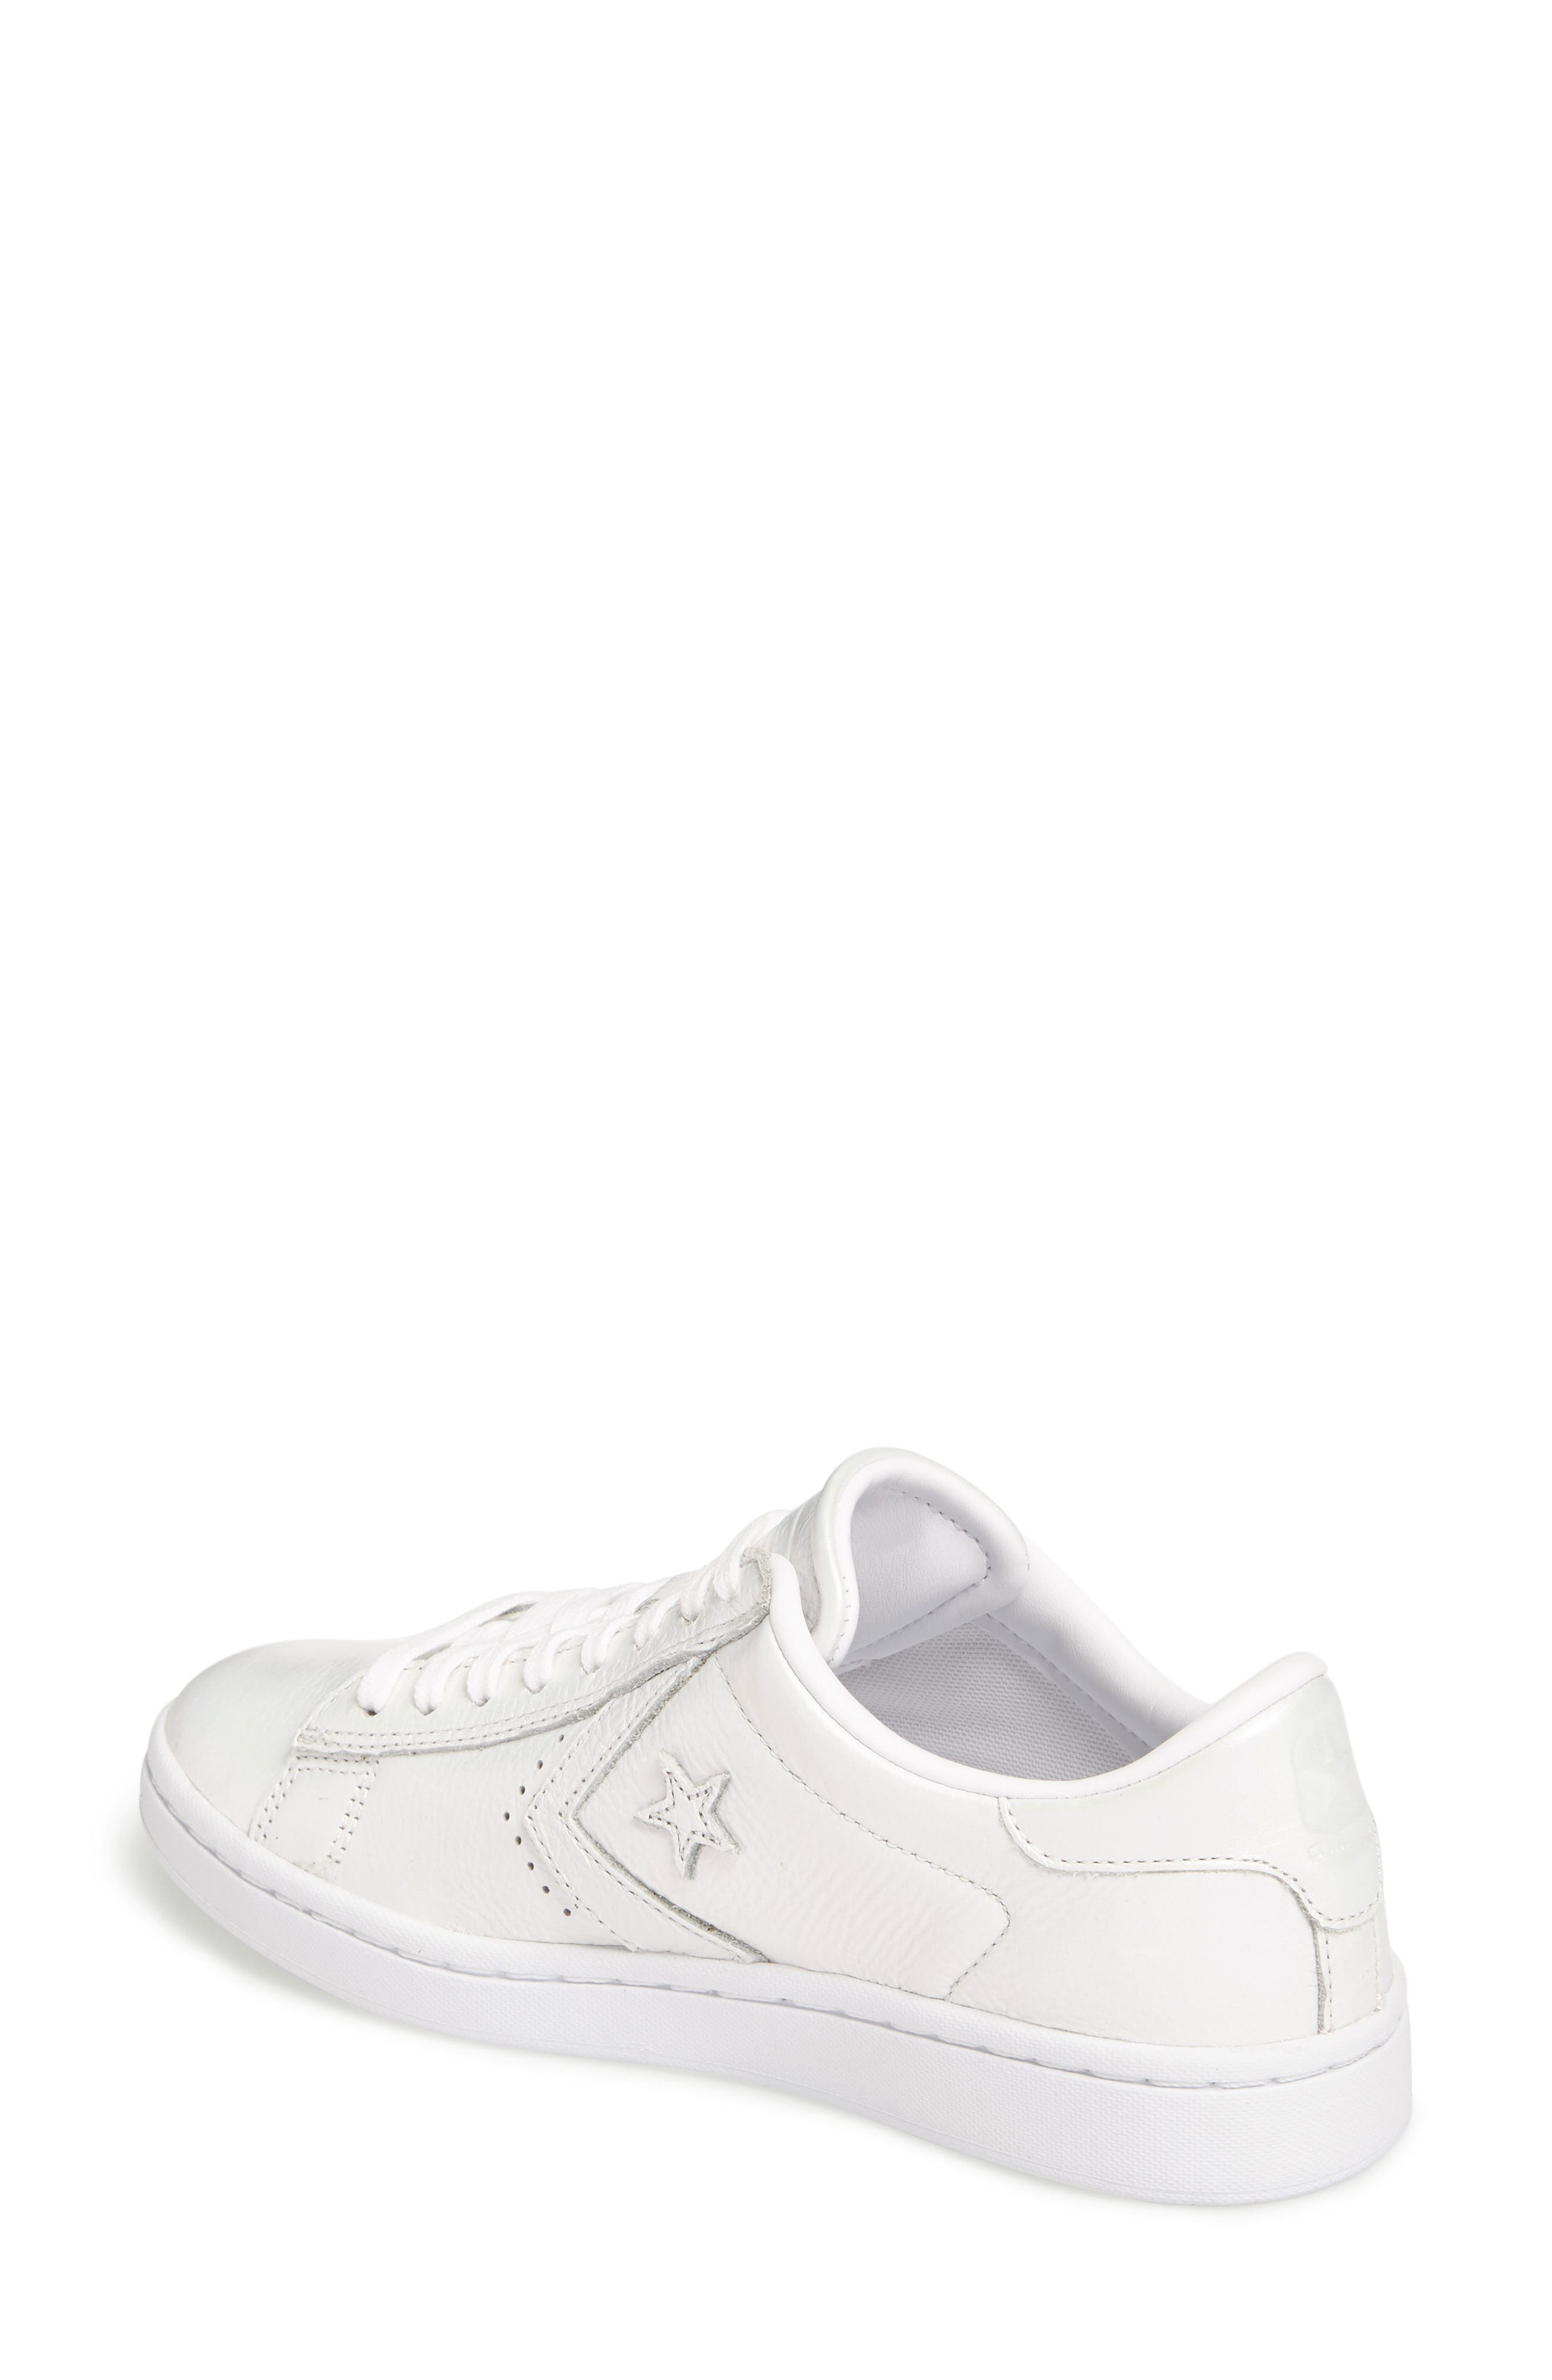 Pro Leather LP Sneaker,                             Alternate thumbnail 2, color,                             White Leather